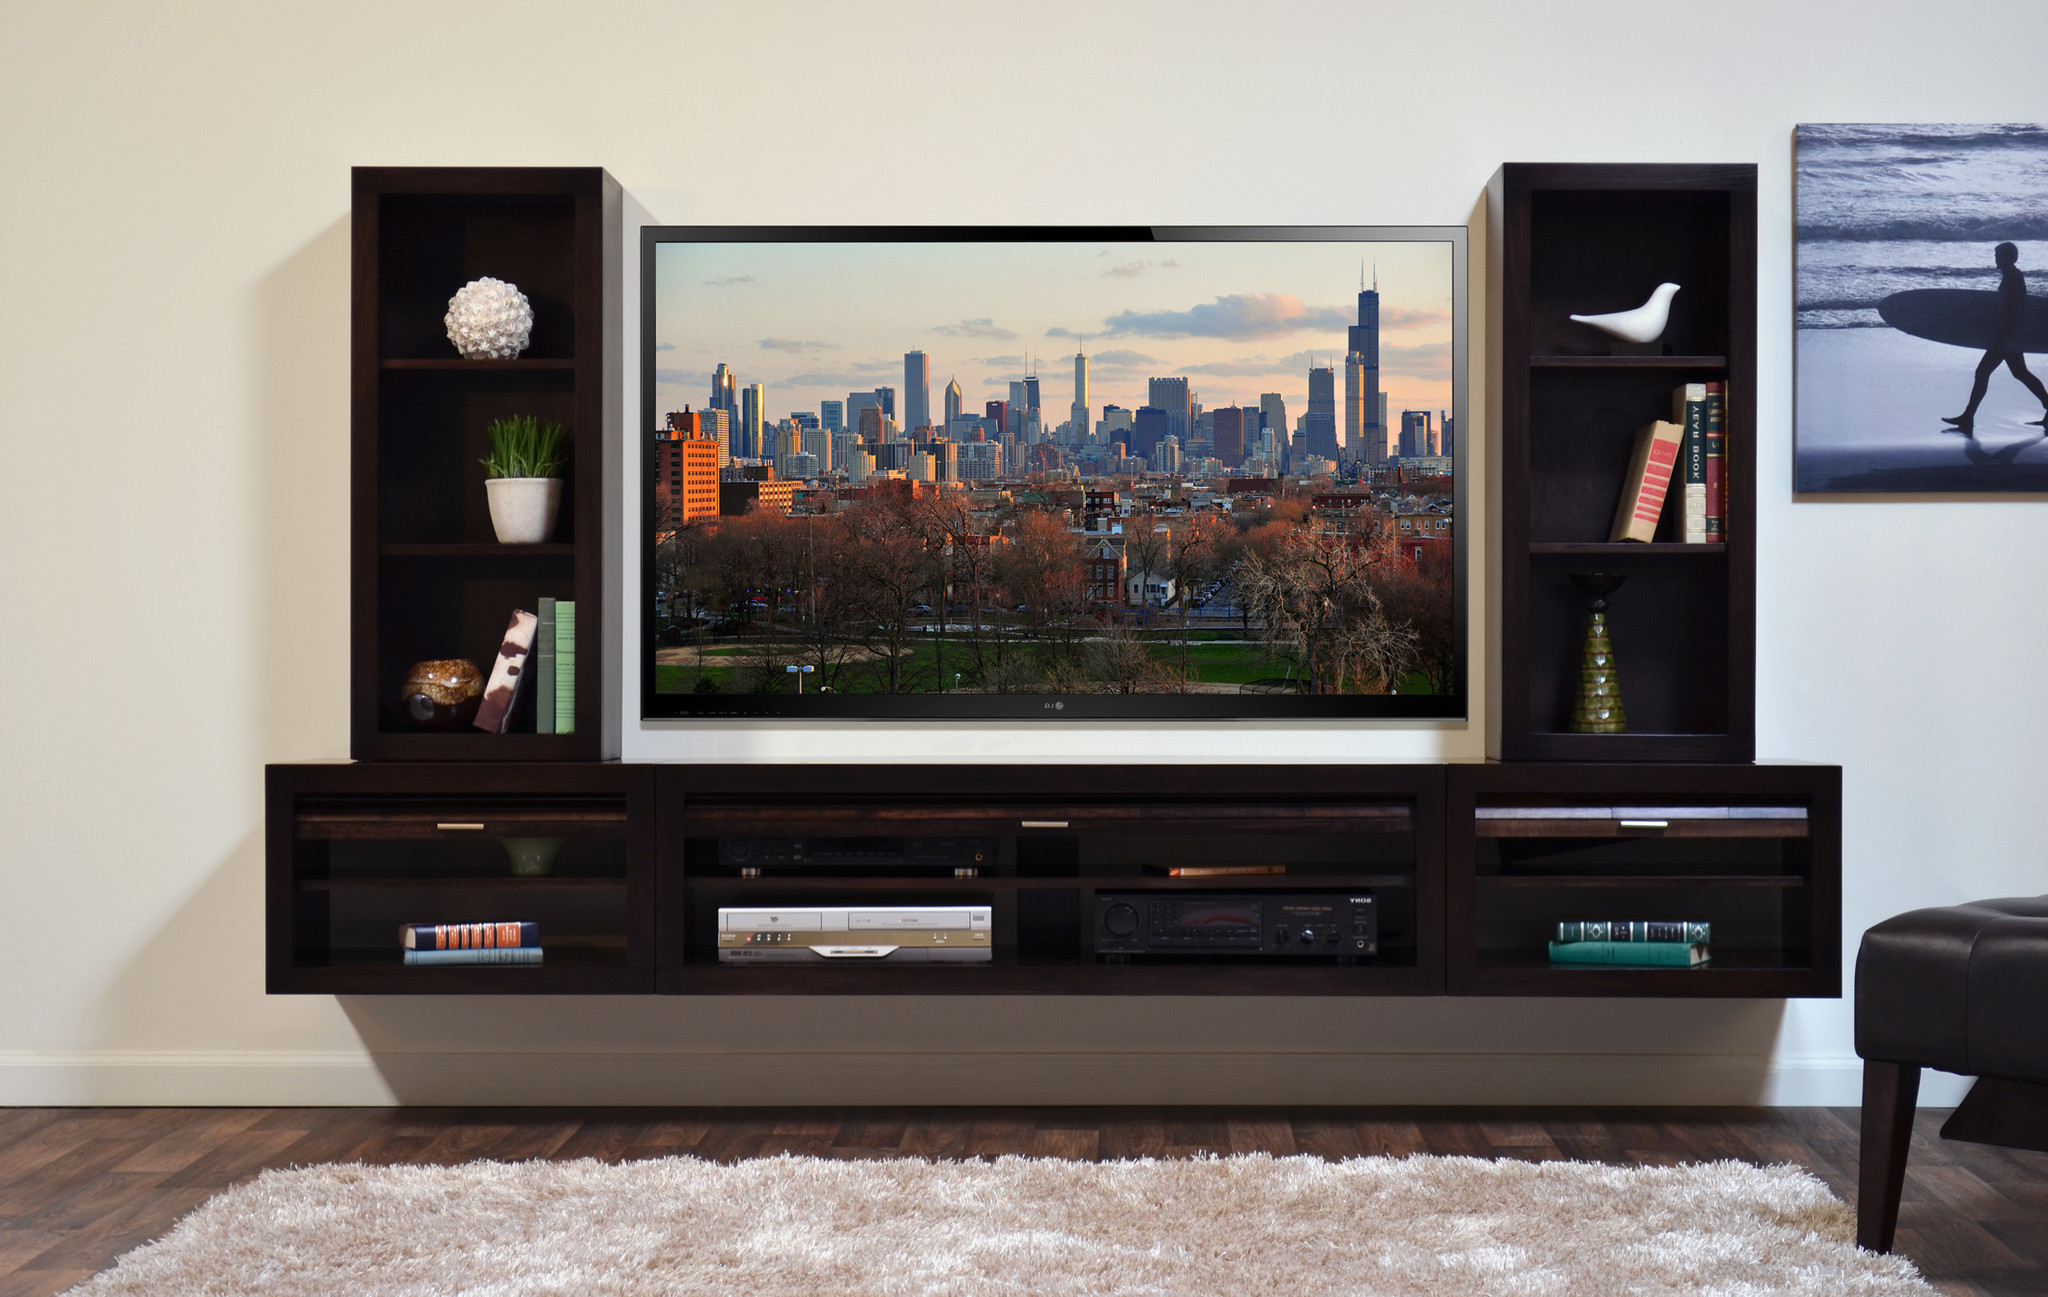 Latest Ikea Hemnes Tv Stand Discontinued White Gloss Modern Wall Units For In Tv Stand Wall Units (View 20 of 20)